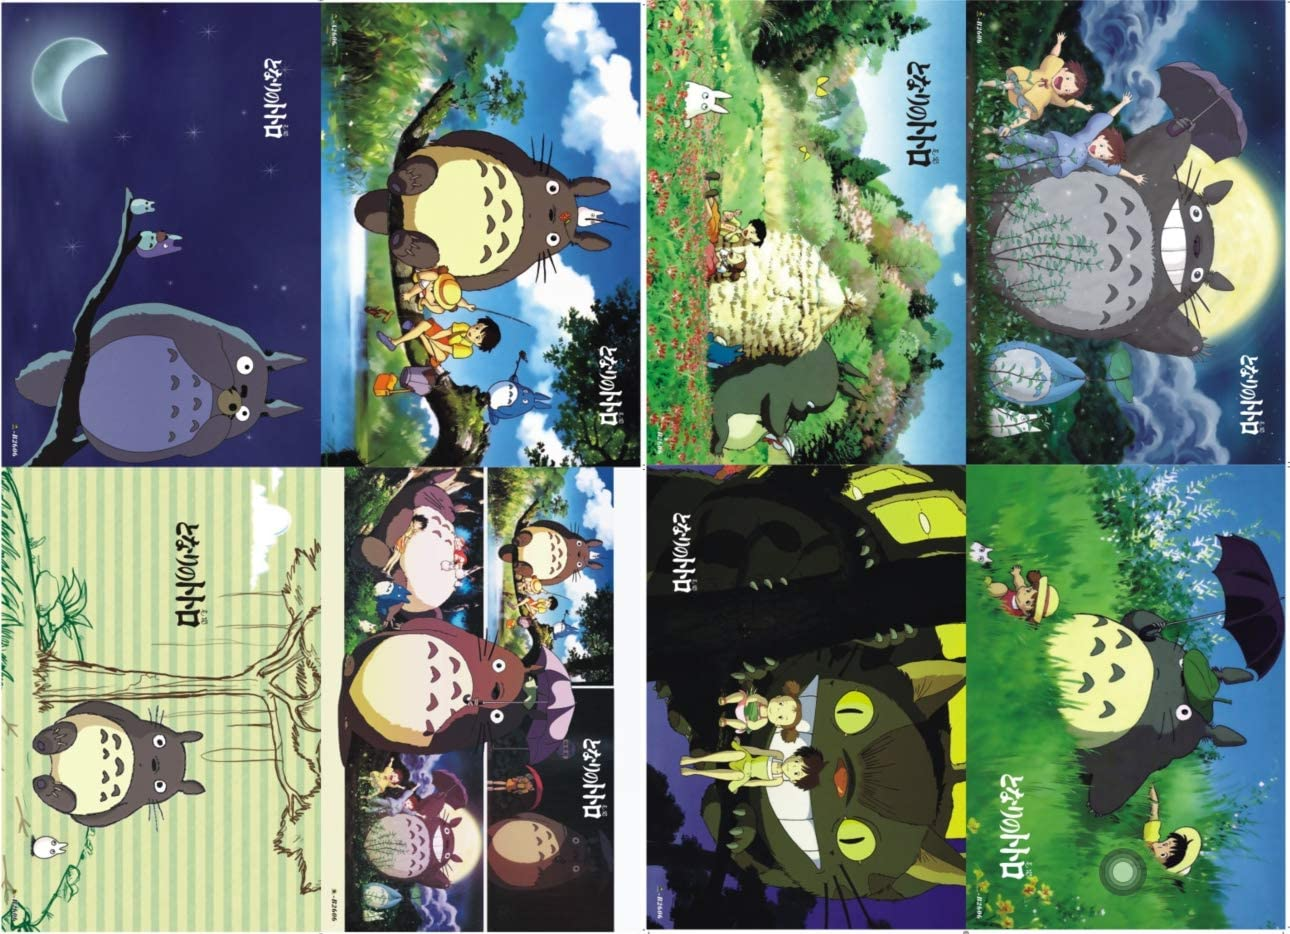 ePanda My Neighbor Totoro Tonari no Totoro Poster Wall Decor Art Print,Set of 8 pcs,11.5x16.5 inches